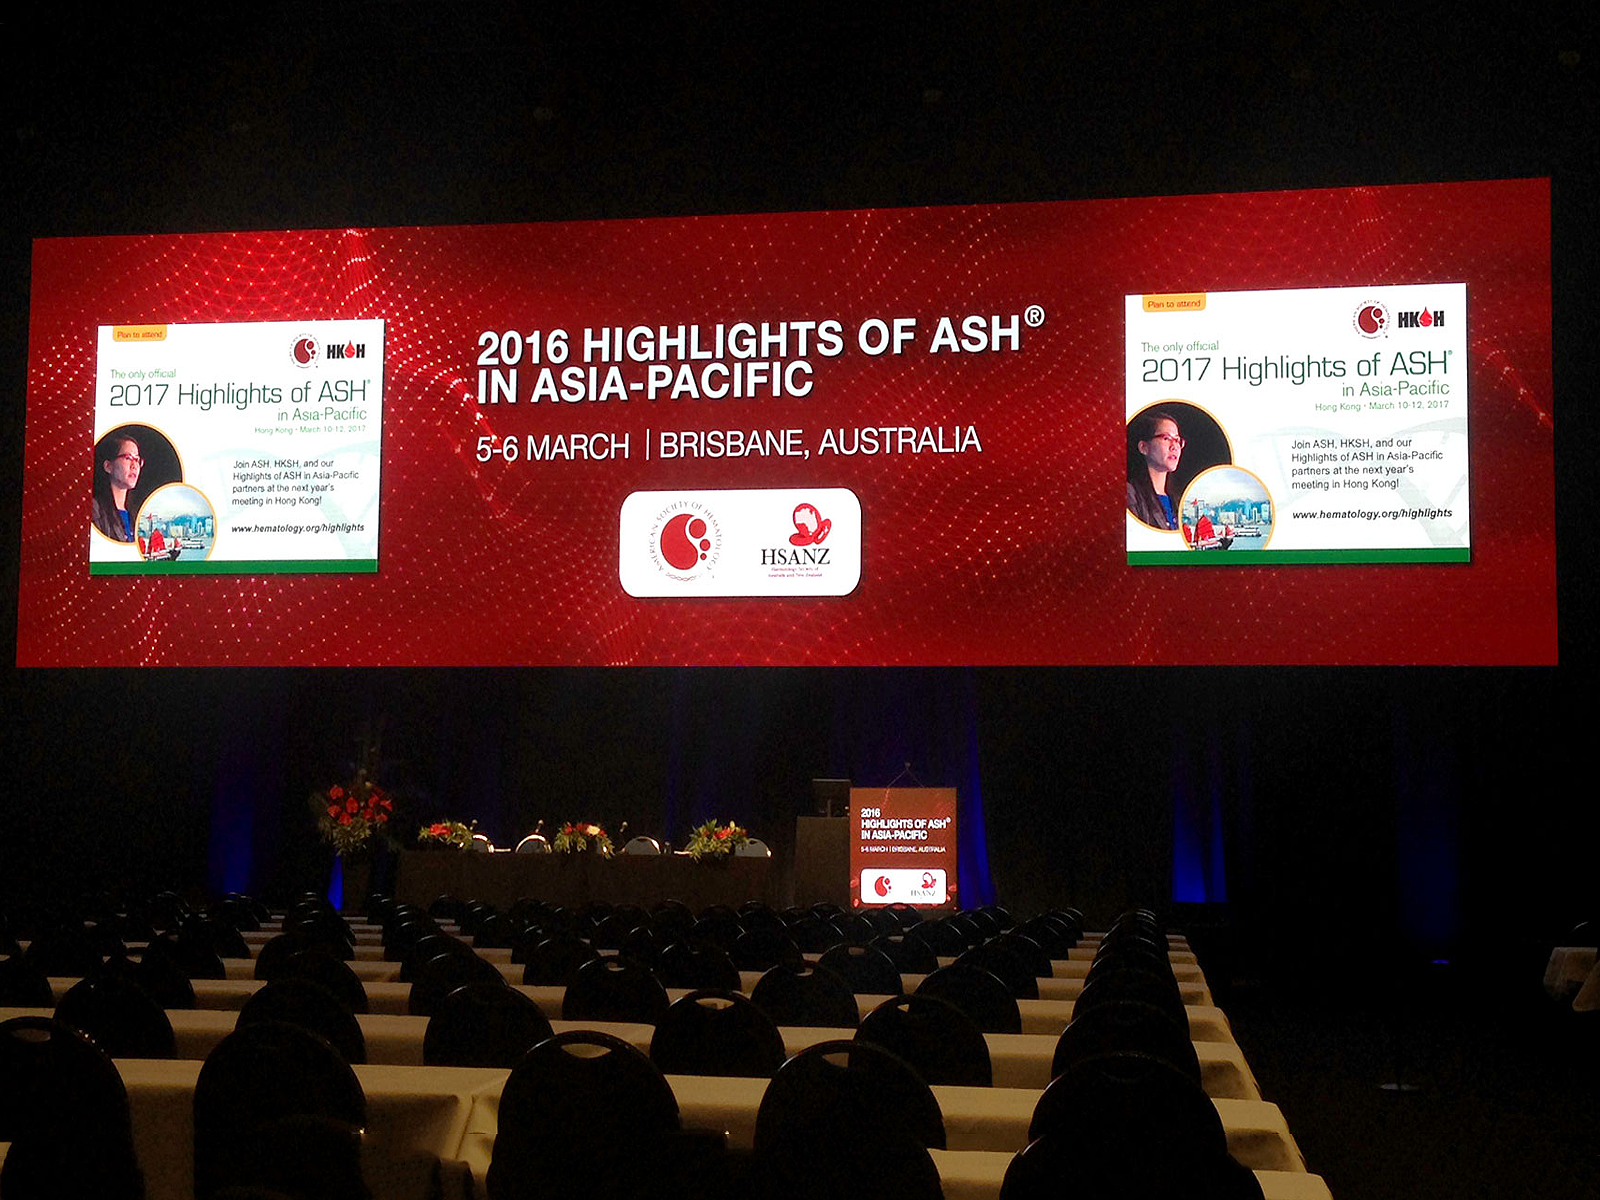 Highlights Of Ash 2016